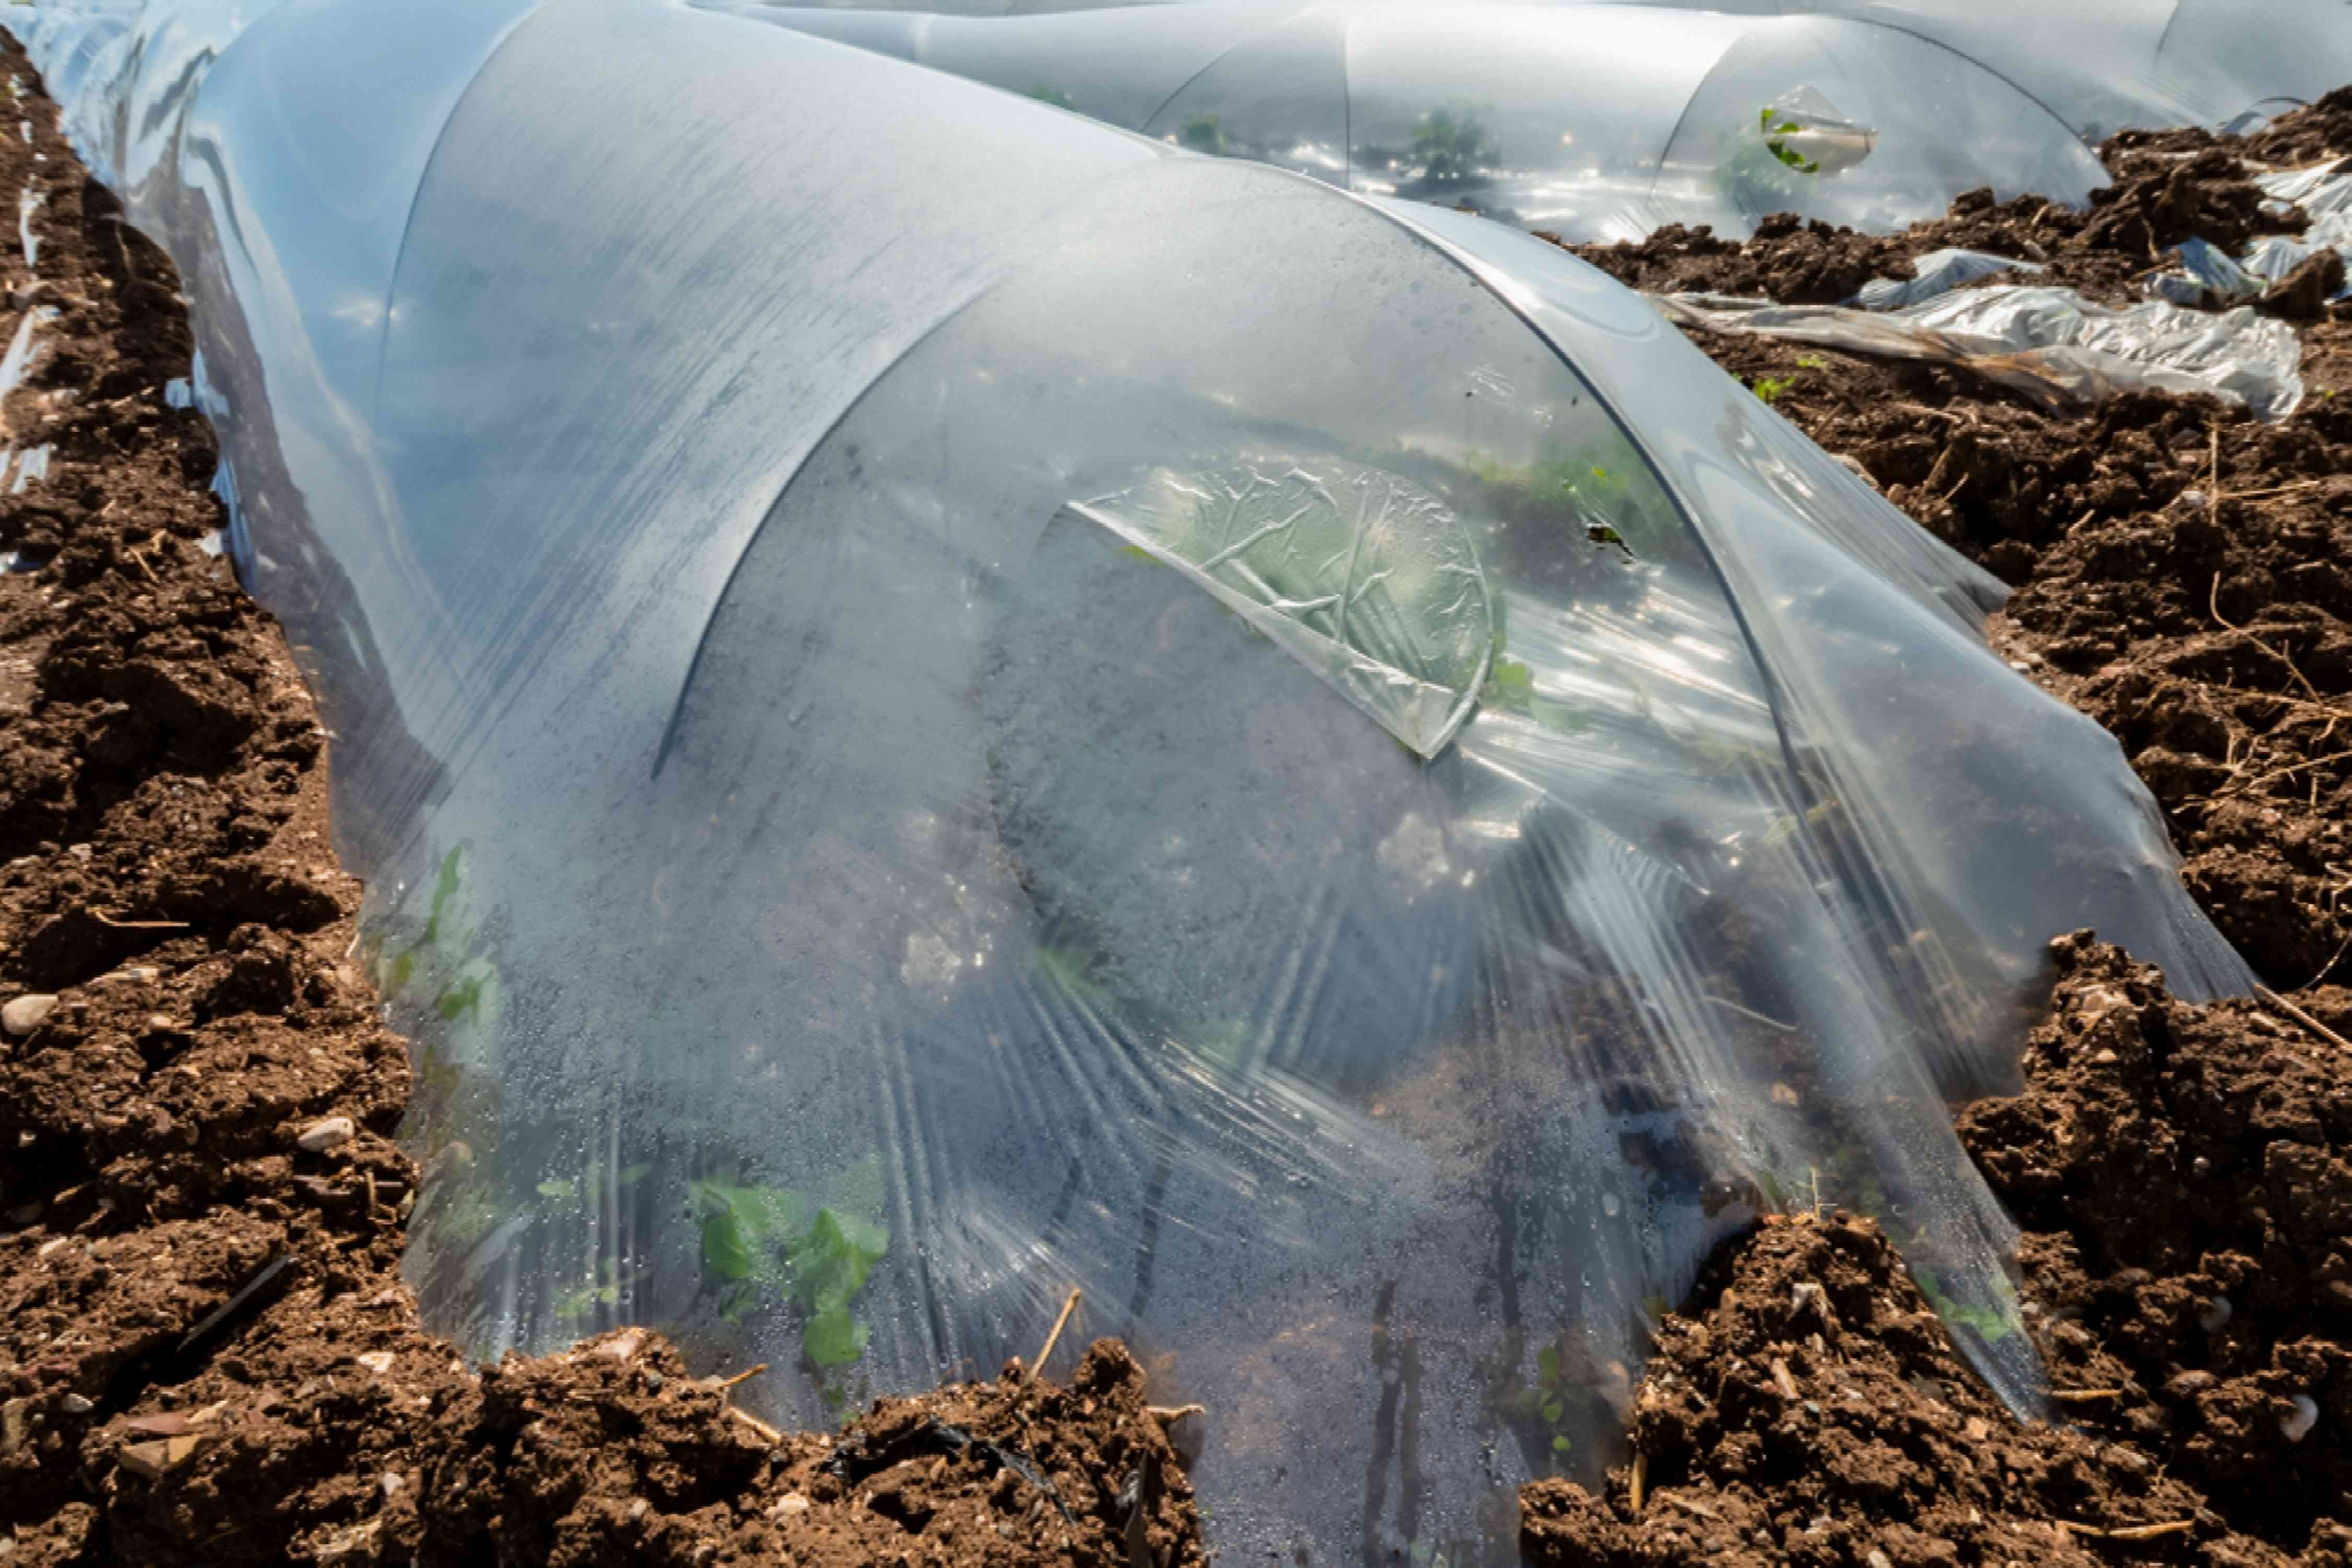 Frost protection covering tomato plants during cold weather